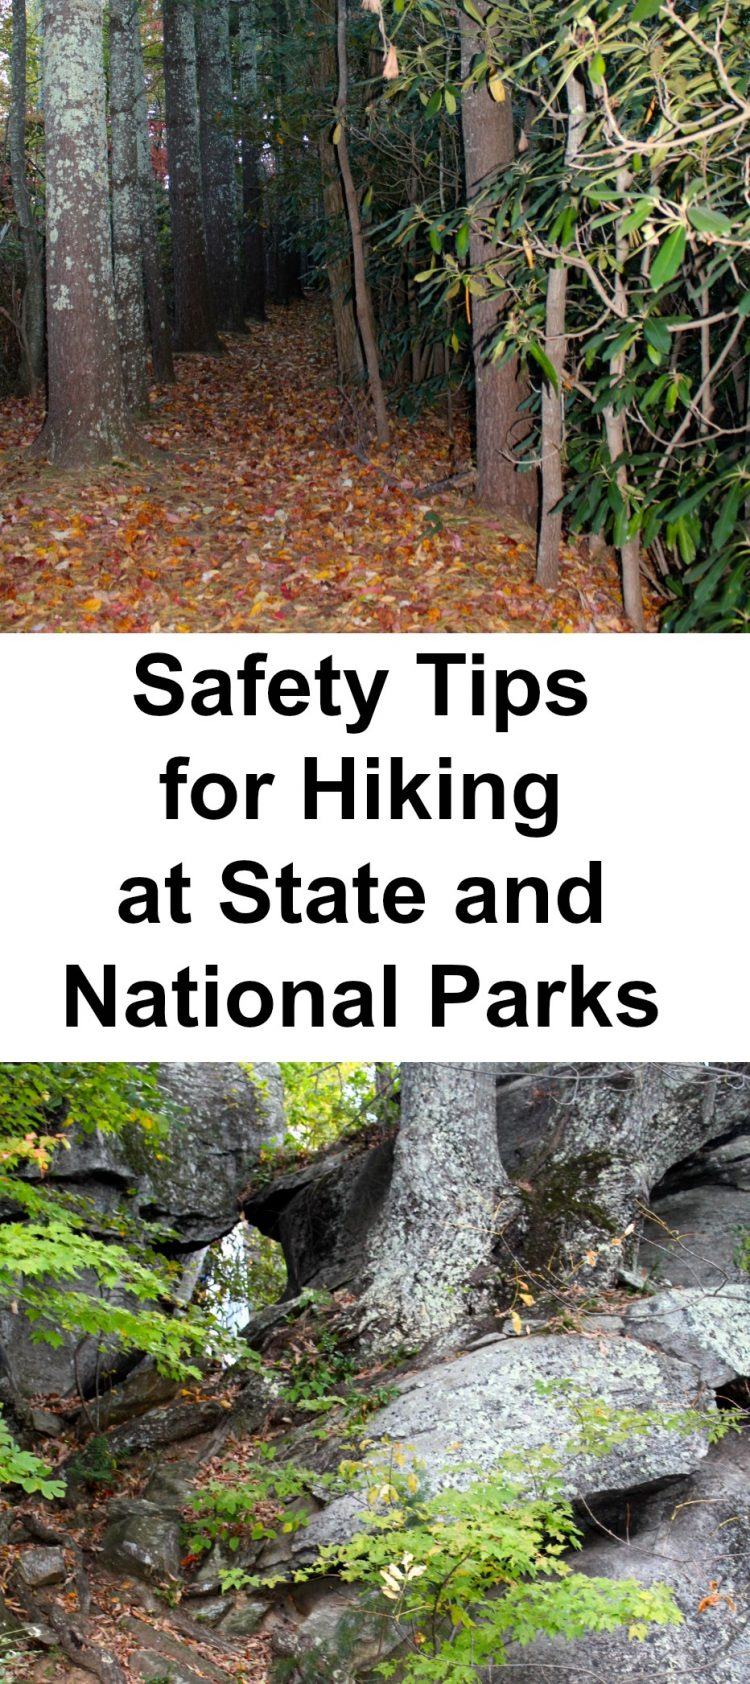 Essential safety tips for hiking at state and national parks. Especially for beginners but a good reminder for all, includes best gear recommendations and some great day trip hiking trails across the United States. #gooutside #adventurer #nationalparks #hikingsafety #hikingsafetytips #hikingtipsforbeginners #beginnerhikingtips #firsttimehikingtips #hikinggear via @karendawkins